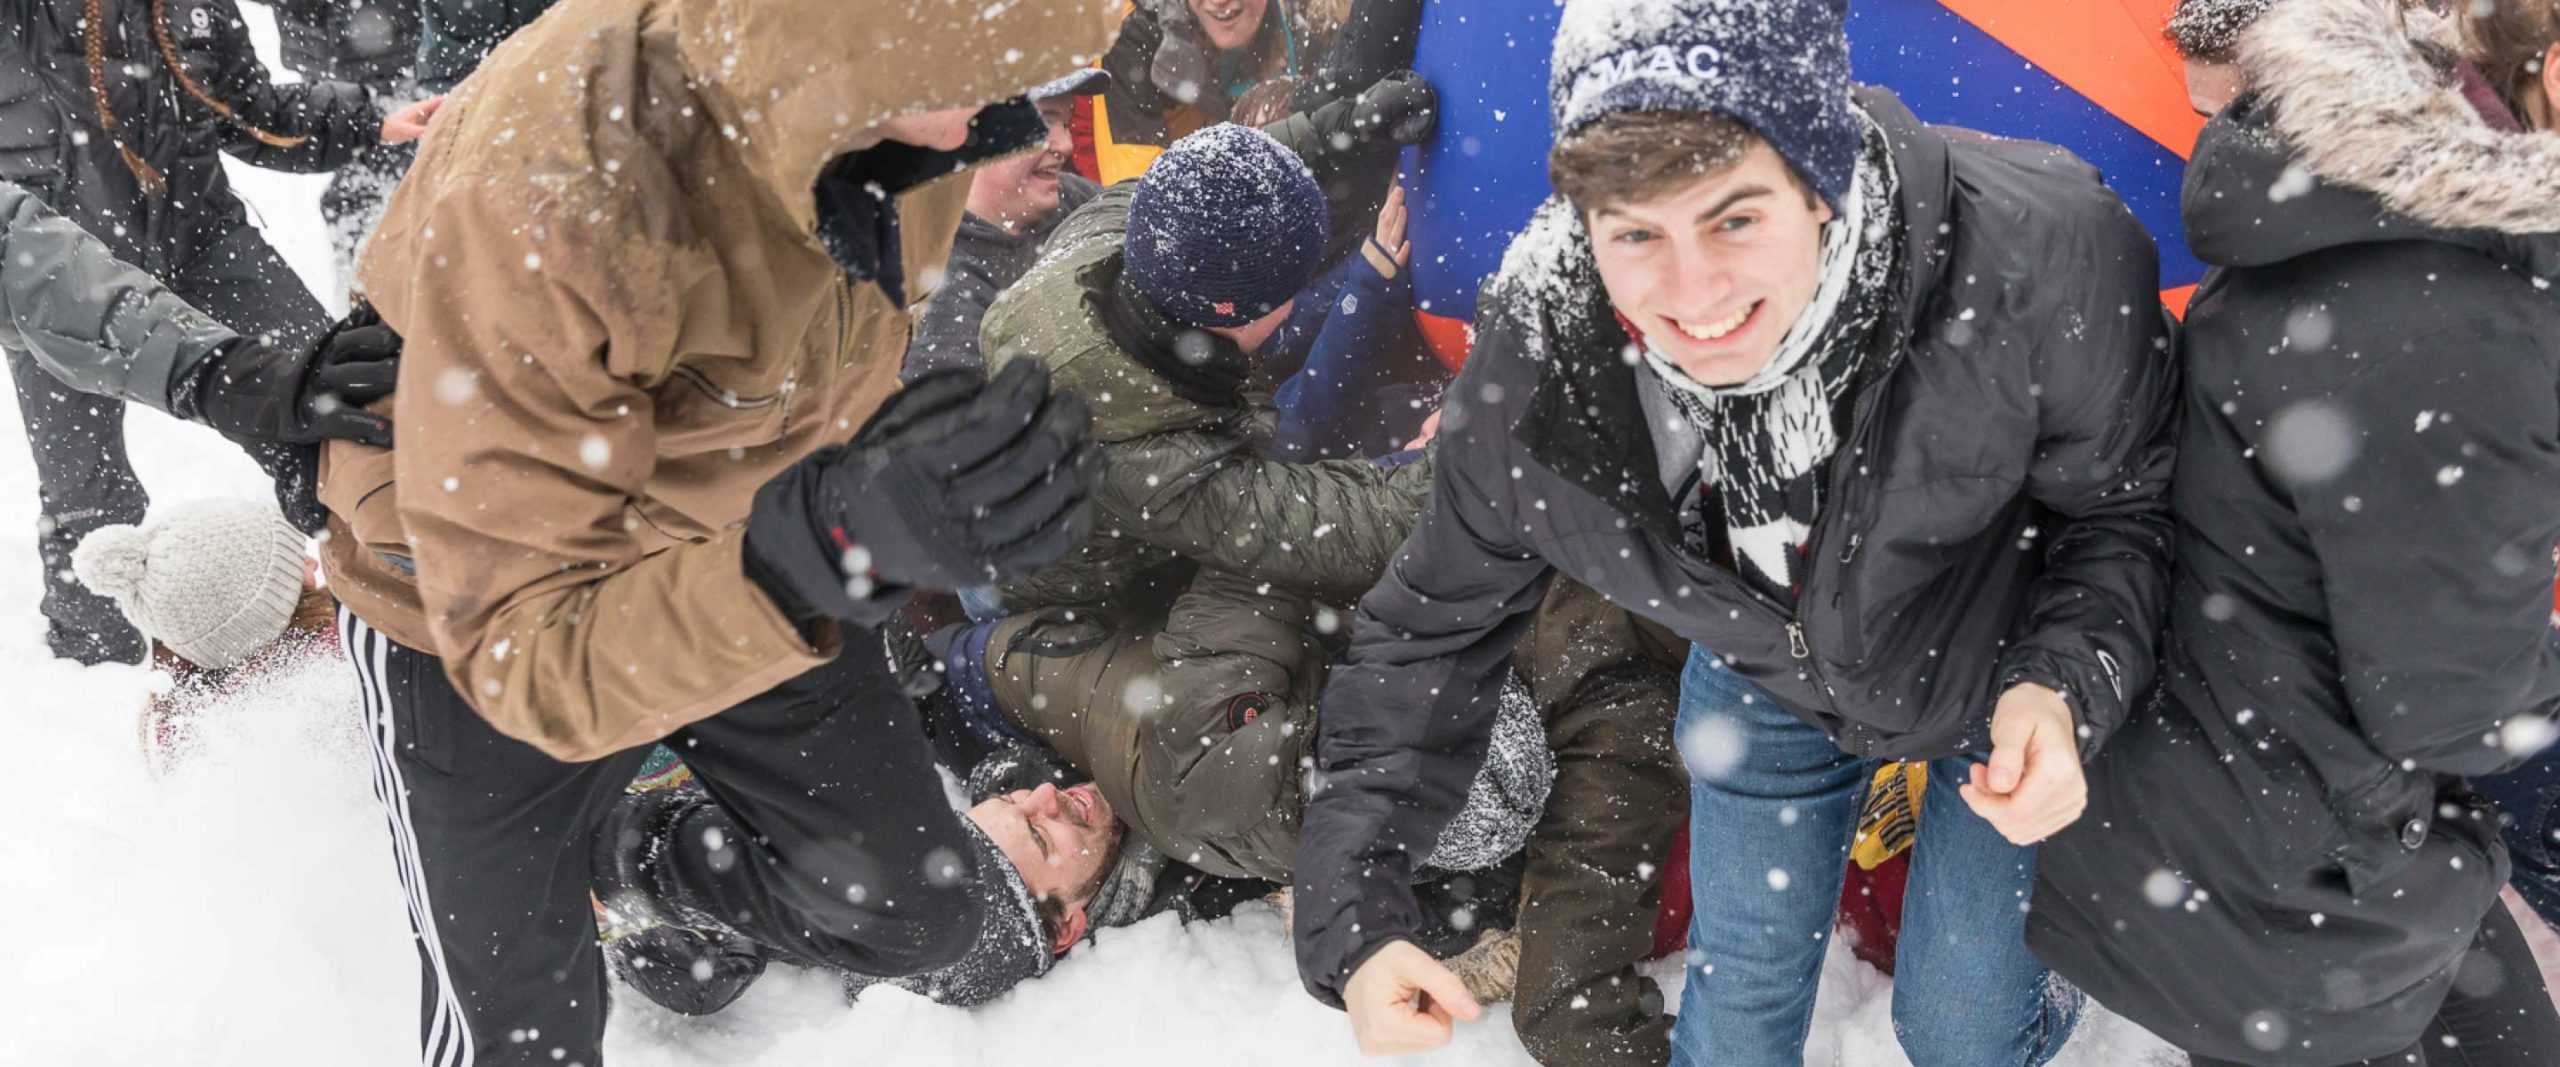 Students playing pushball in the snow.